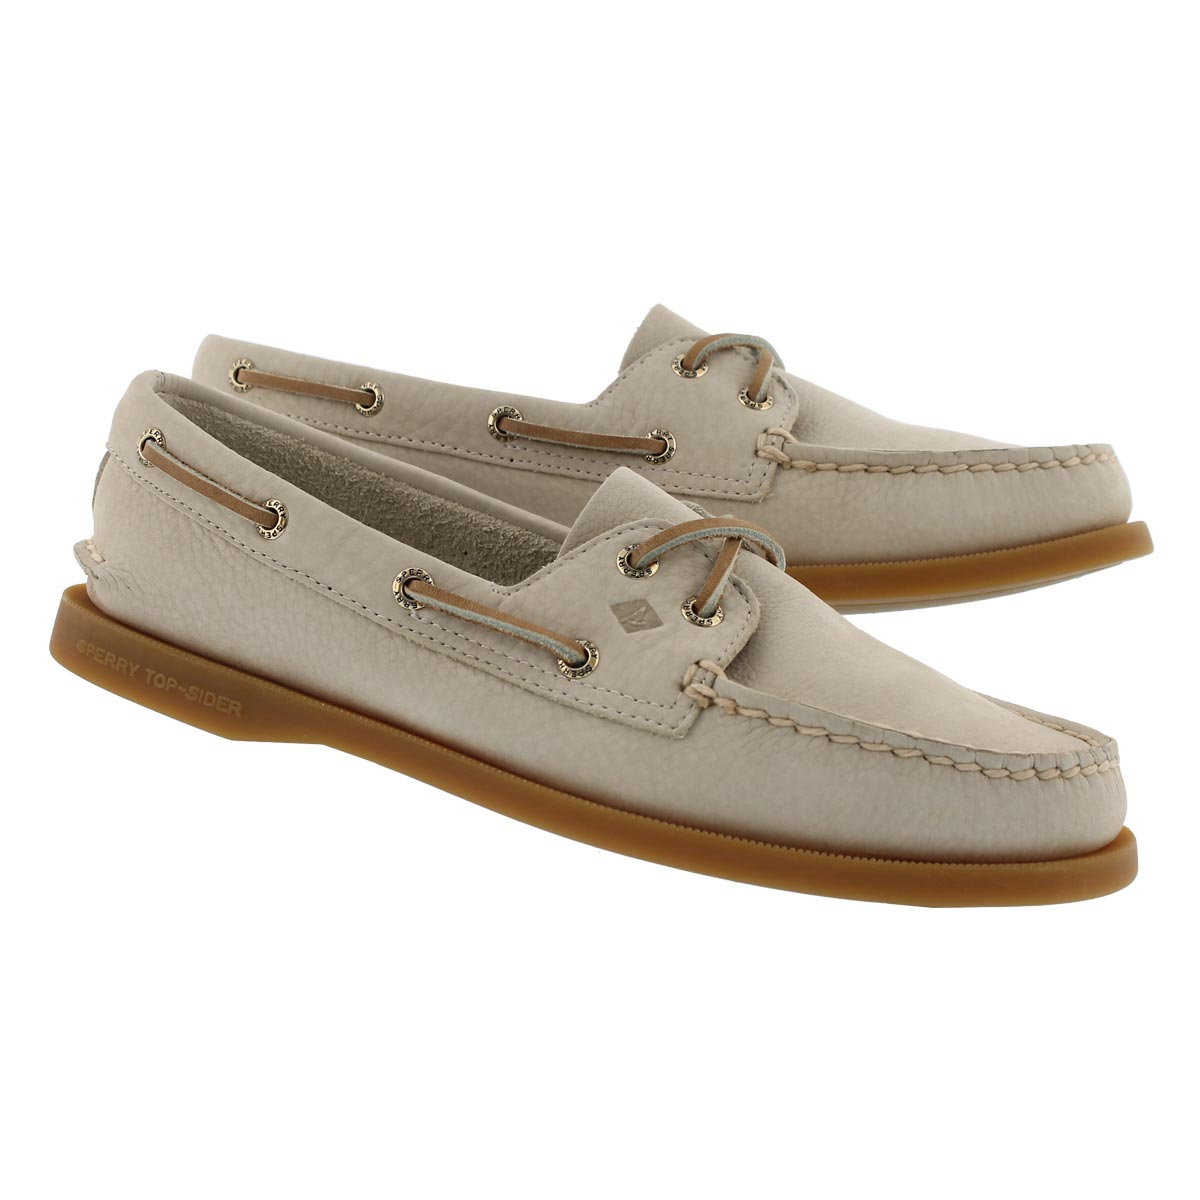 Lds A/O 2-eye sand boat shoe